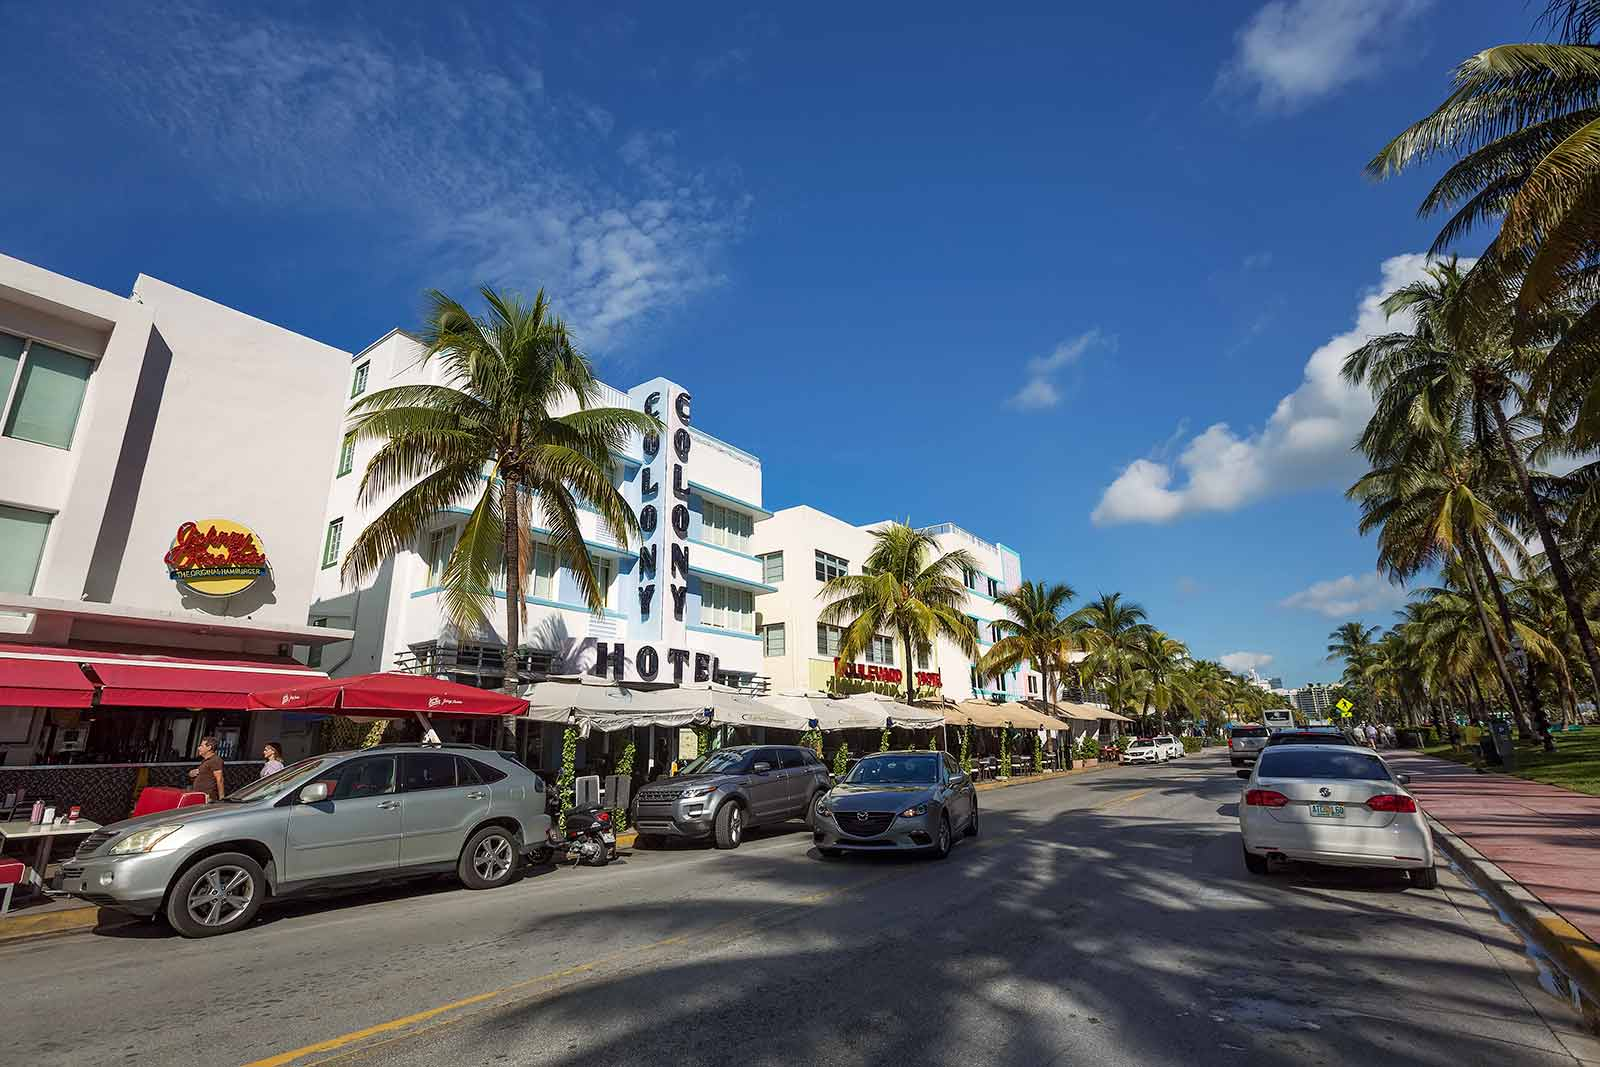 The Colony Hotel is a well known landmark on Ocean Drive in Miami.